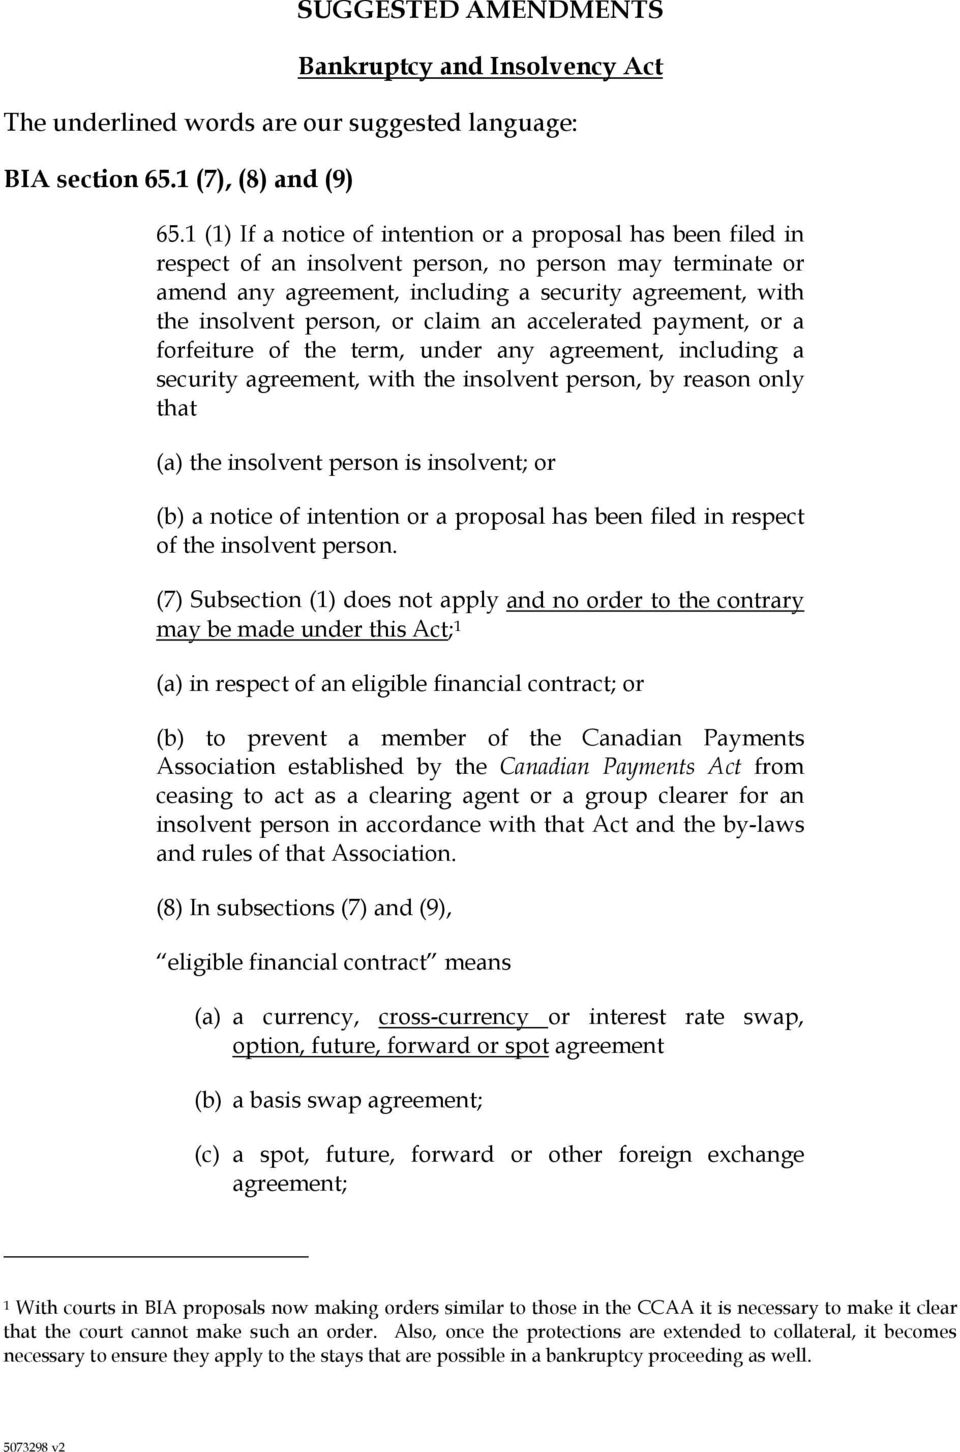 bankruptcy and insolvency act canada pdf